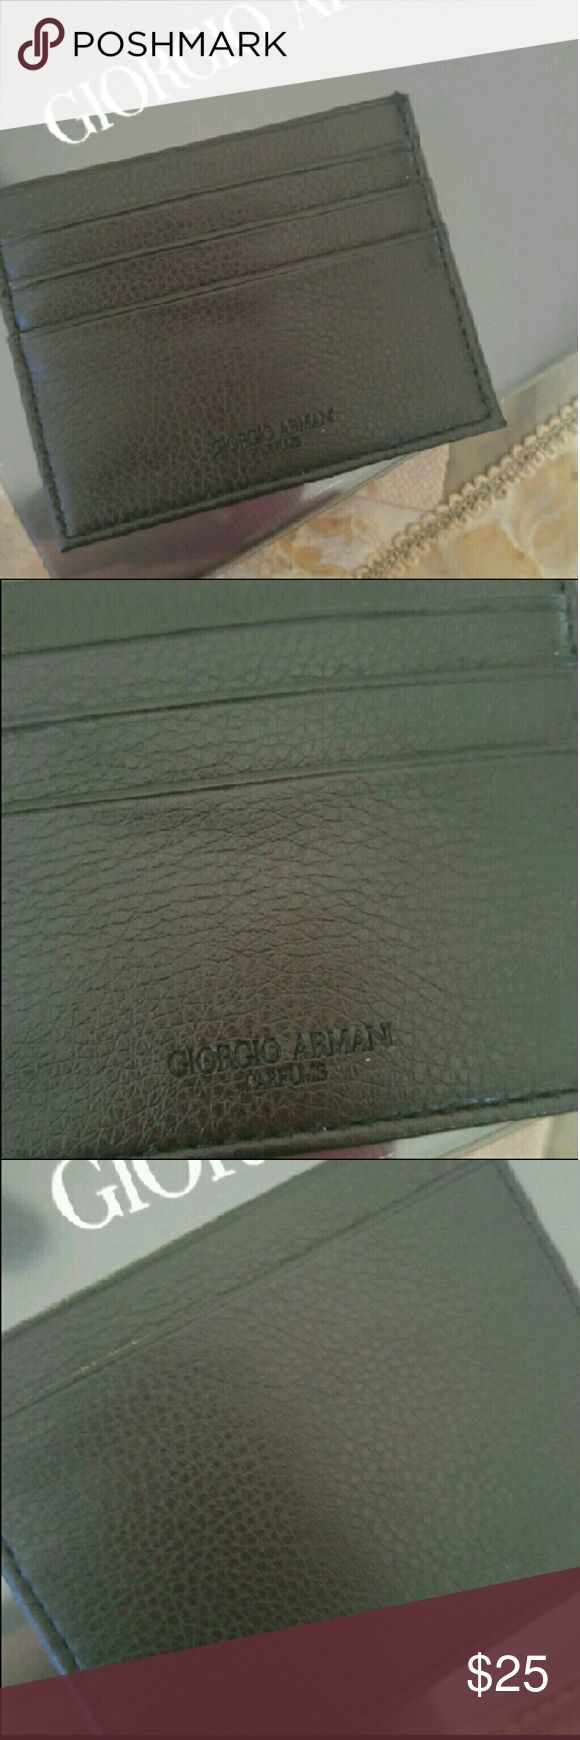 Giorgio Armani leather wallet/card holder A slim alternative to a traditional wallet, it is made from finest leather and will safely hold up to 4 cards.  Its also fits standard size business cards and has a middle compartment for bills or receipts.  It came as part of a parfum set and will come in original packaging. Giorgio Armani Bags Wallets